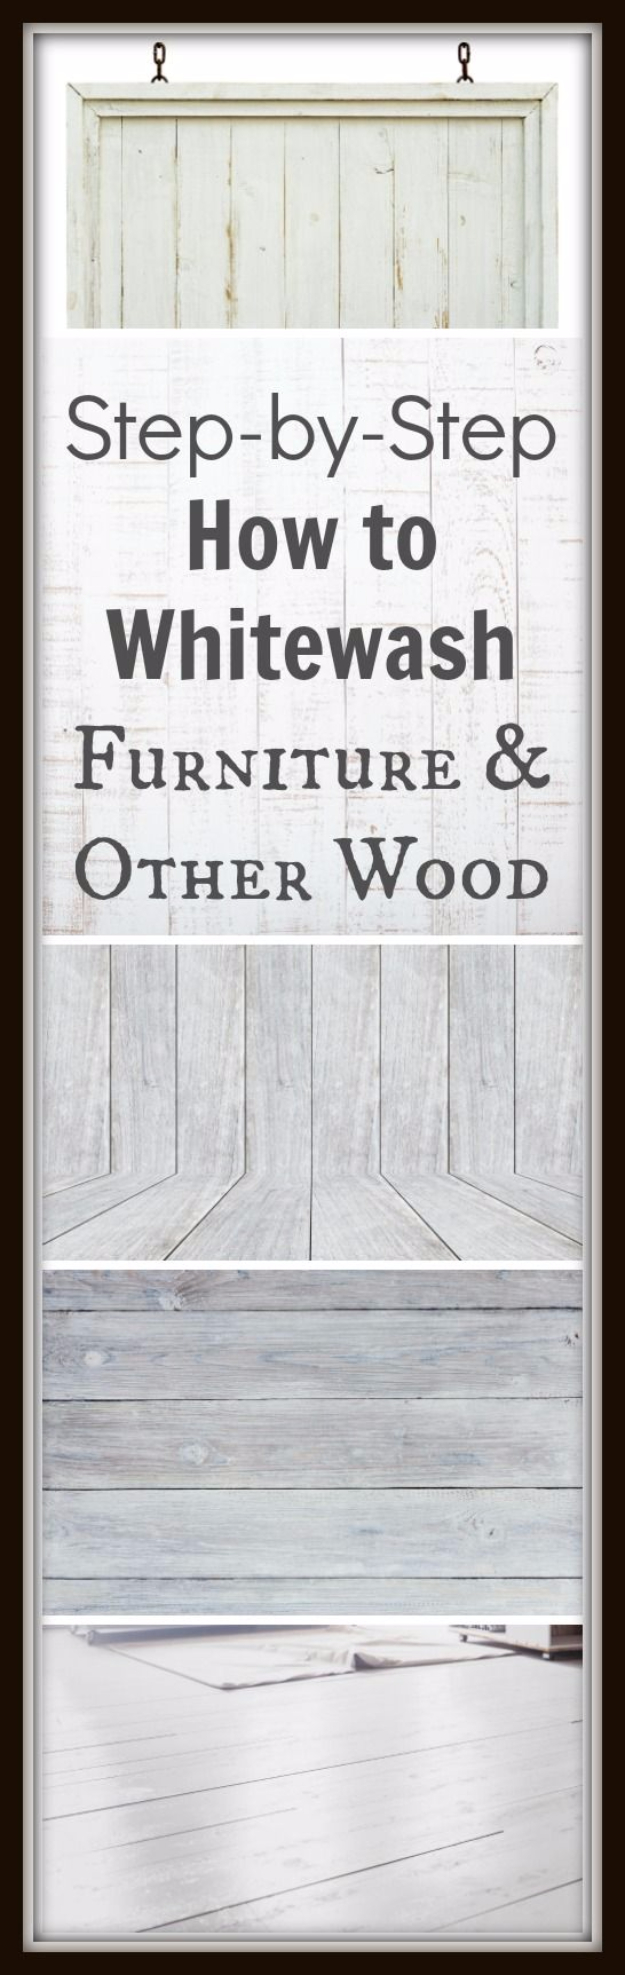 DIY Furniture Refinishing Tips - Whitewashing Furniture - Creative Ways to Redo Furniture With Paint and DIY Project Techniques - Awesome Dressers, Kitchen Cabinets, Tables and Beds - Rustic and Distressed Looks Made Easy With Step by Step Tutorials - How To Make Creative Home Decor On A Budget